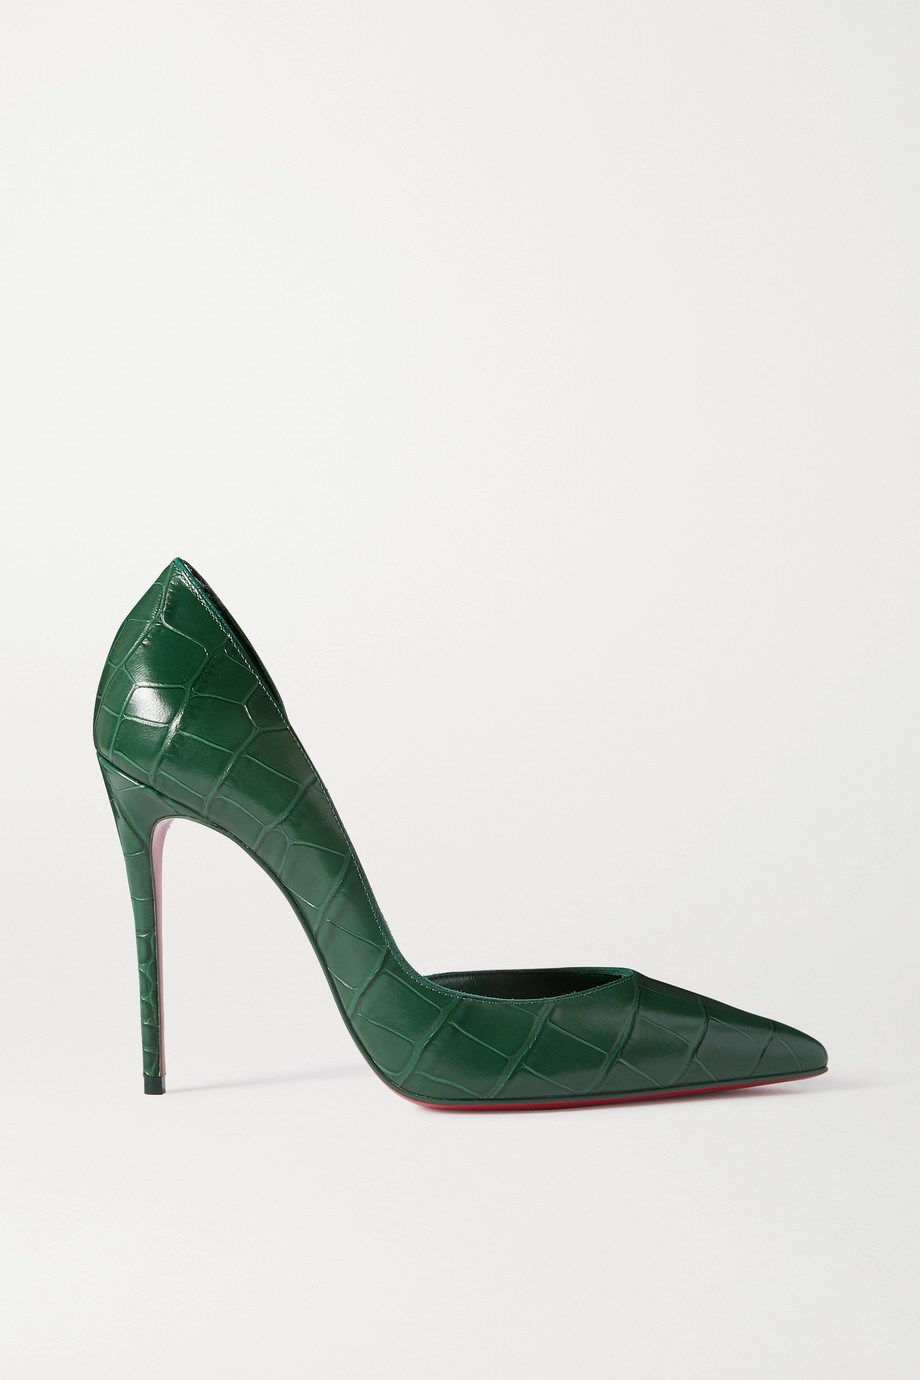 Christian Louboutin Iriza 100 croc-effect leather pumps